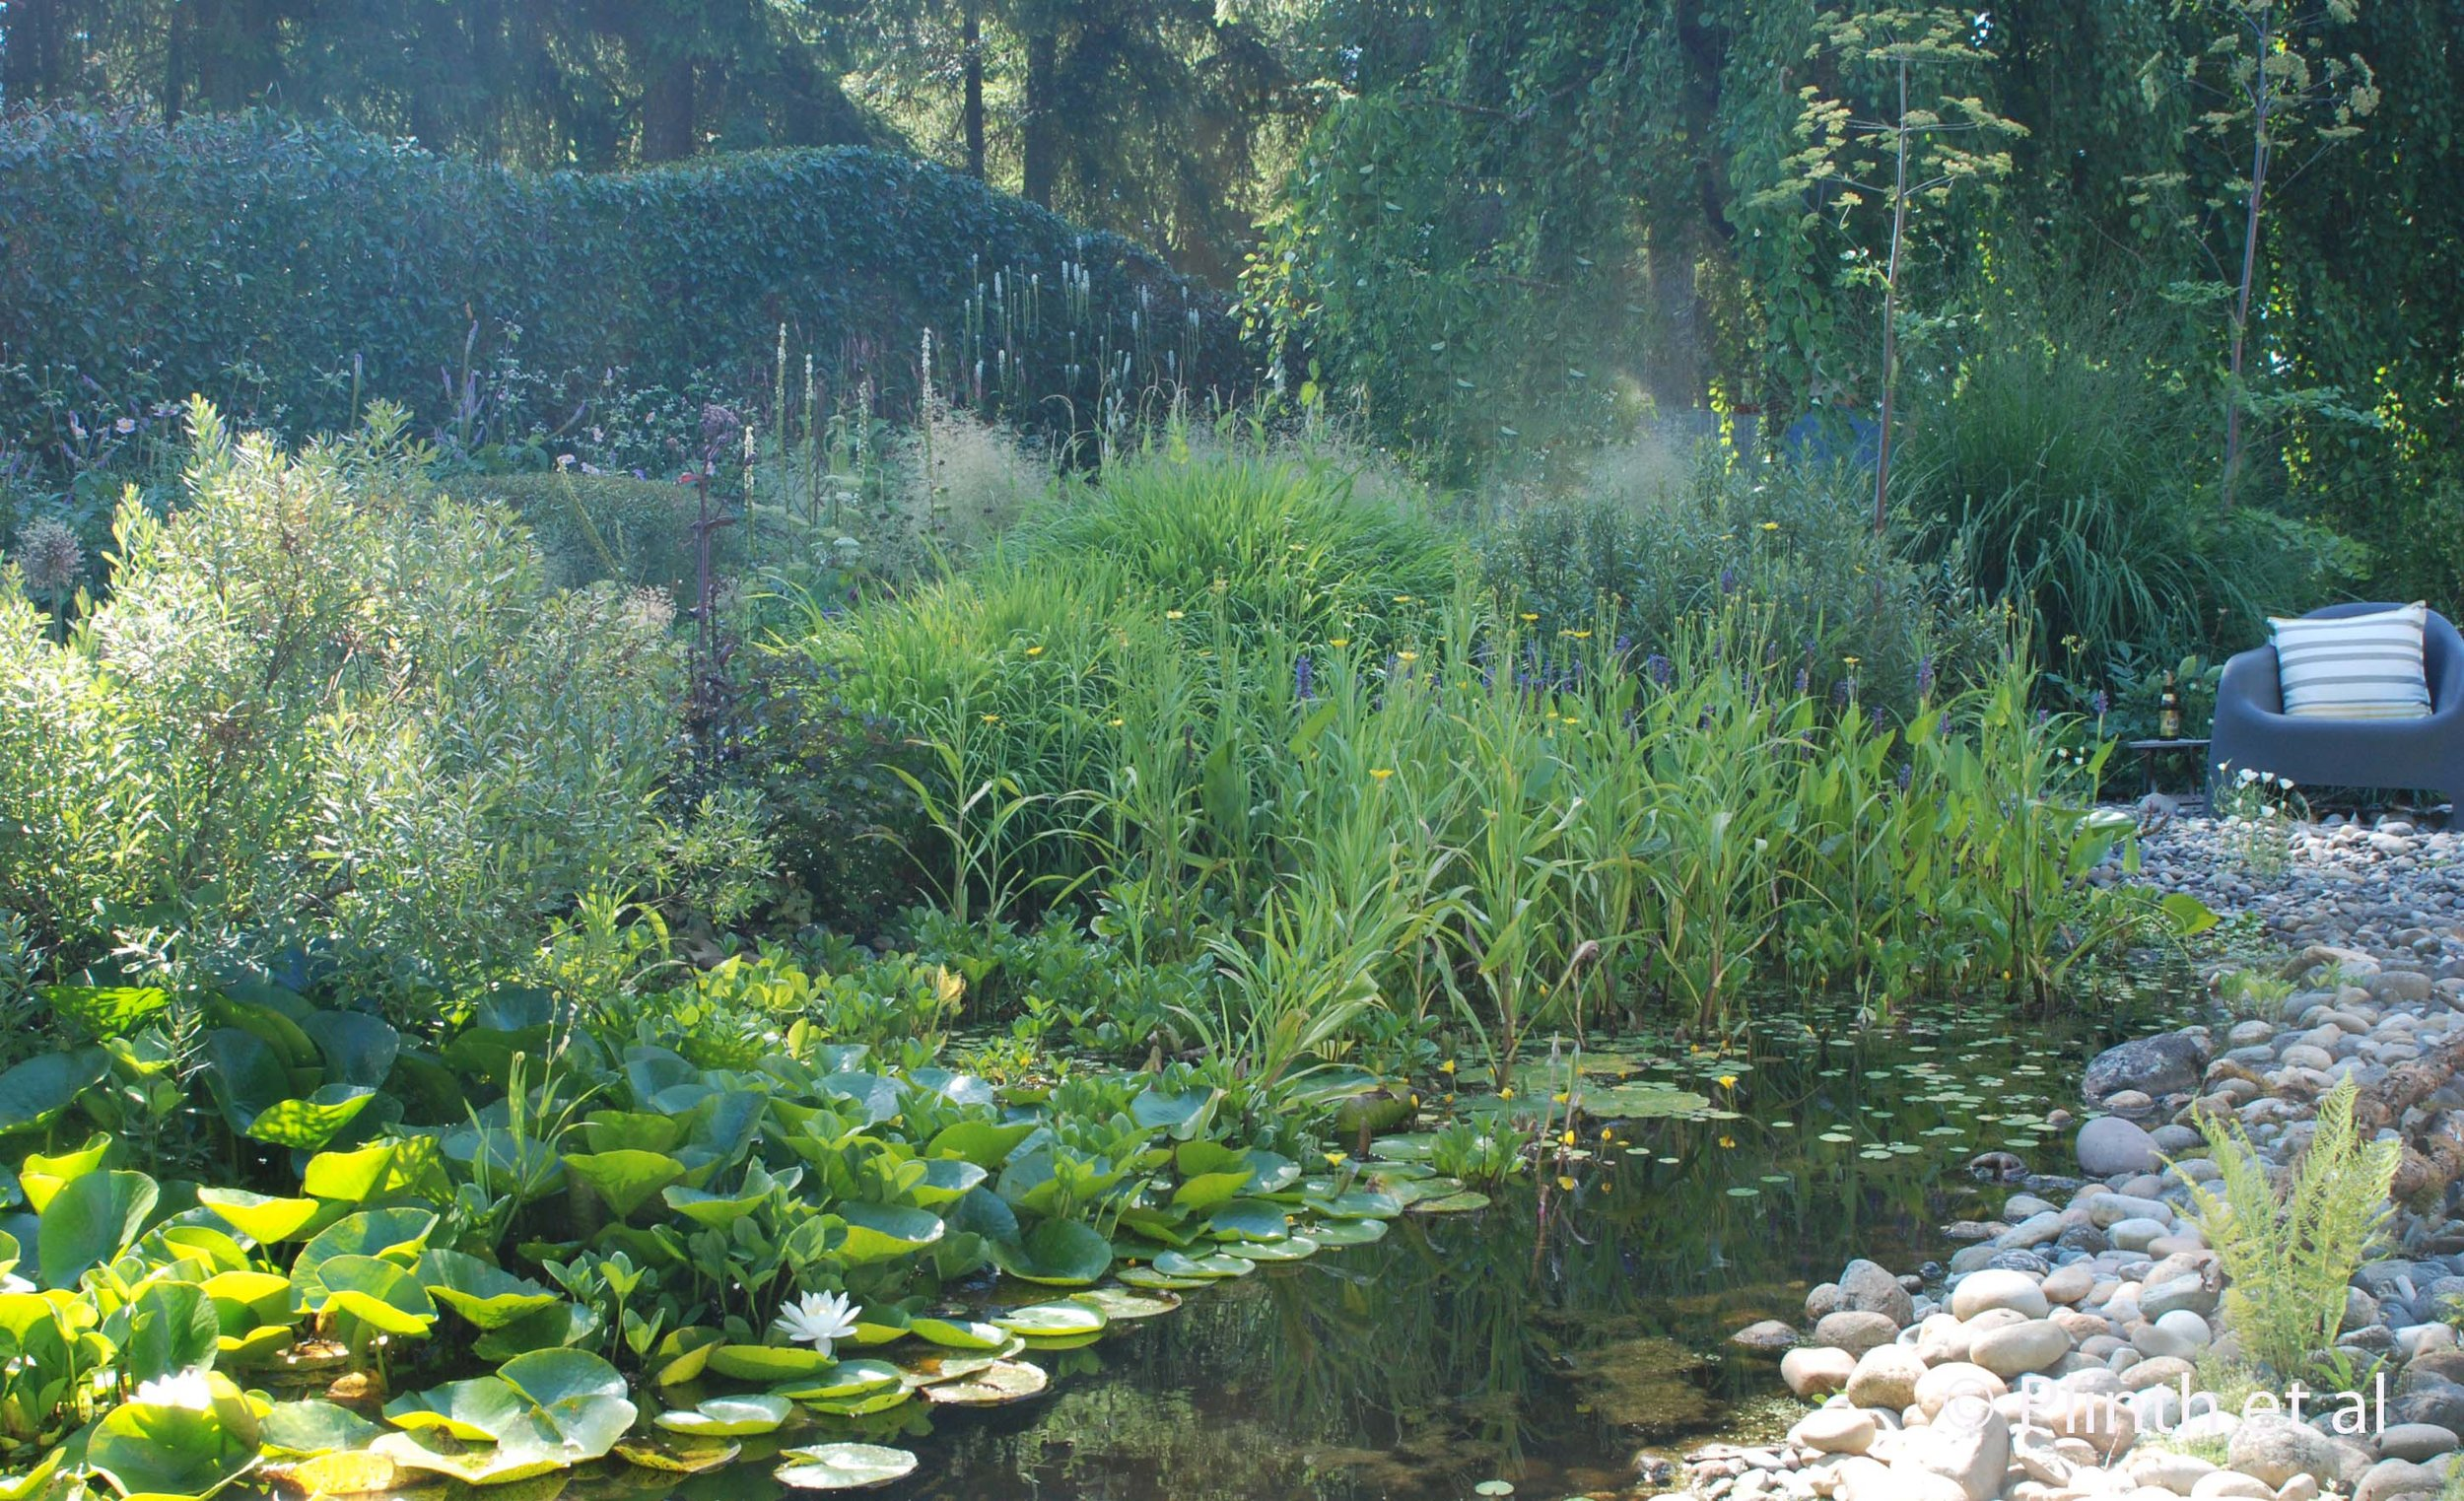 The pond quietly tiptoes between the 'wild' and 'cultivated' realms - the rock bed echoes the waterlilies while the hedge reinforces the distinction between the garden and the outlying woods.